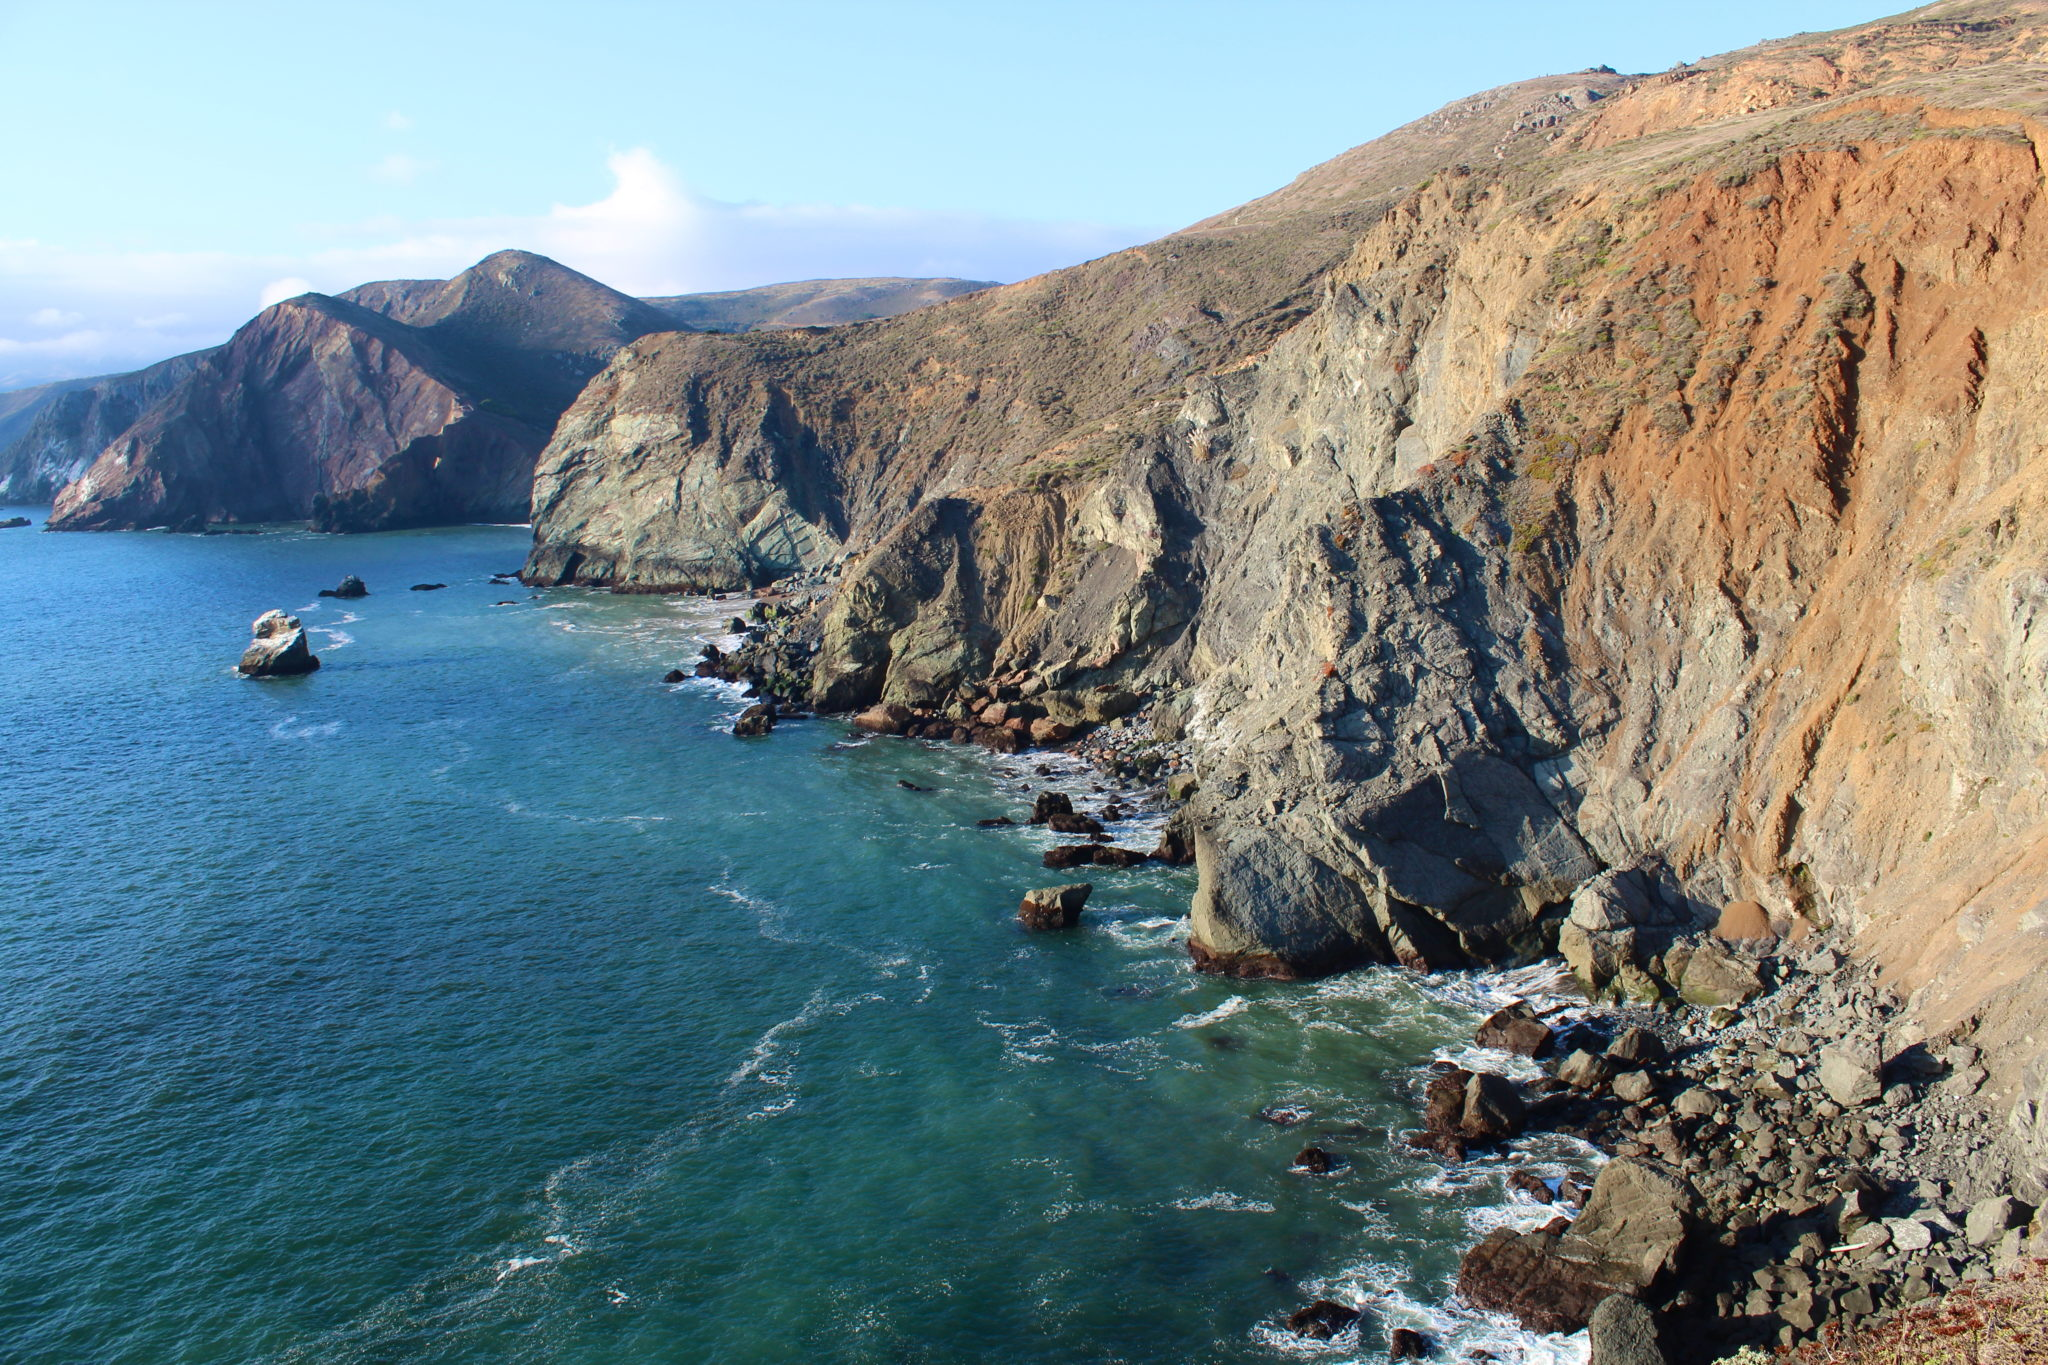 Beyond-San-Francisco-Tour-Marin-Headlands-Coastal-Cliffs